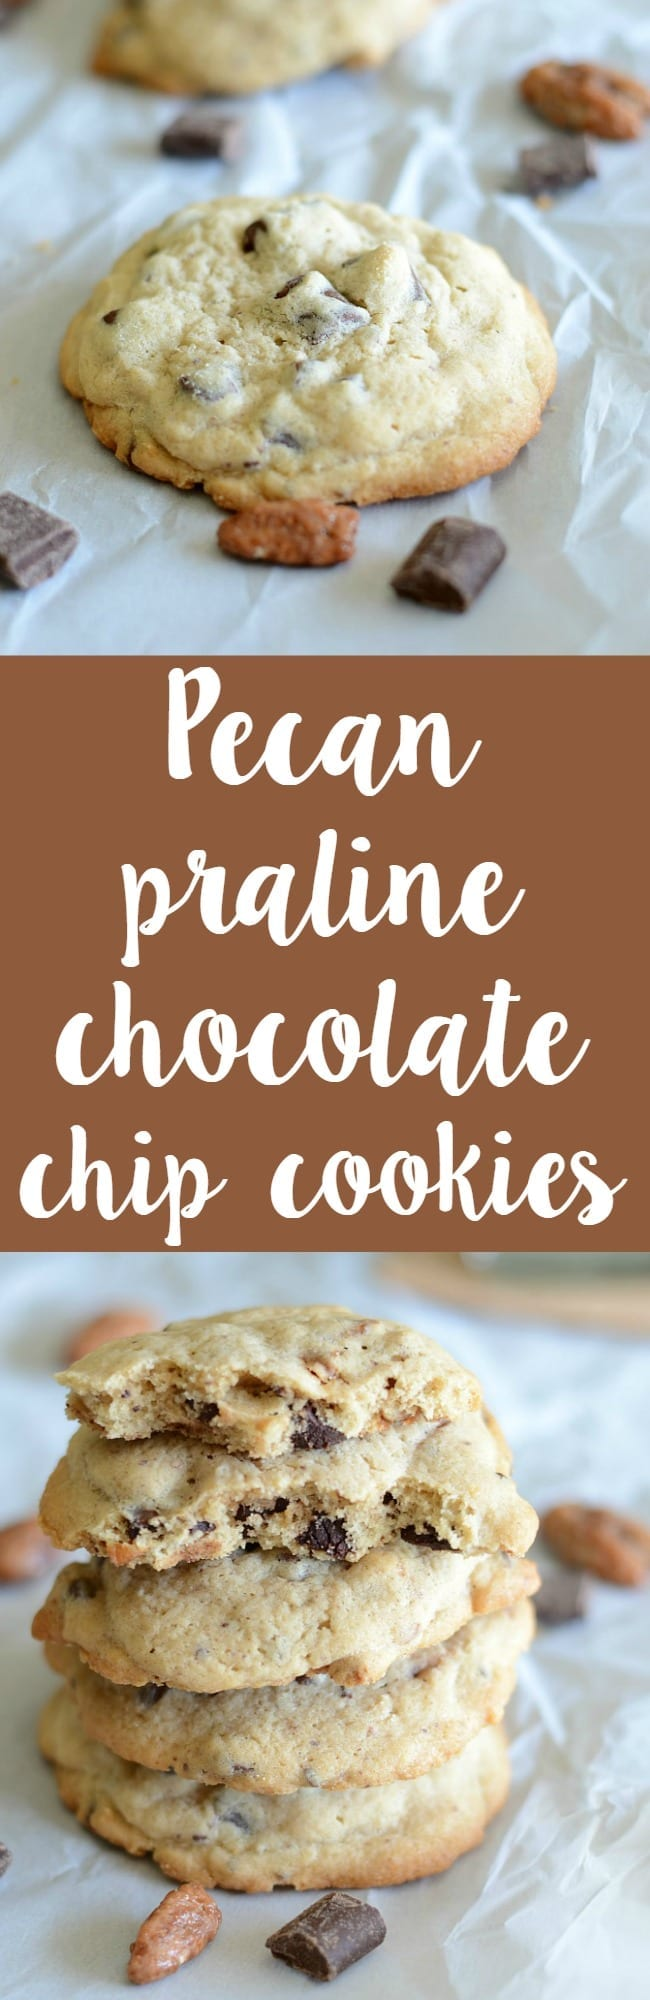 Homemade pecan praline chocolate chip cookies